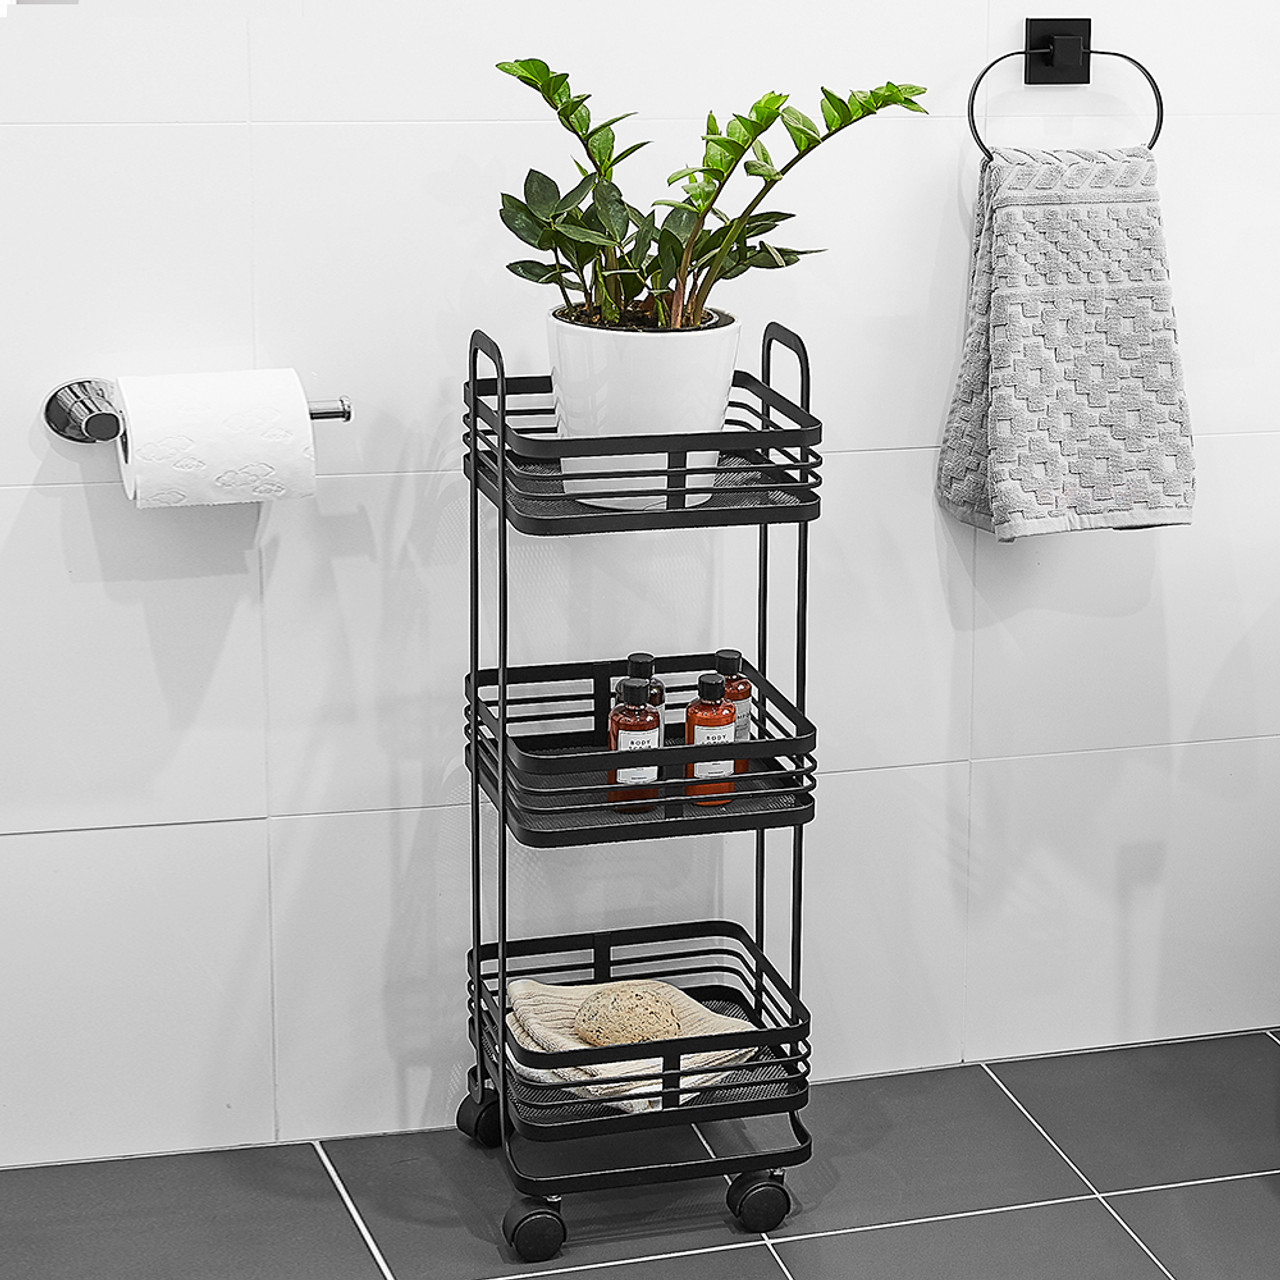 shelving & trolleys